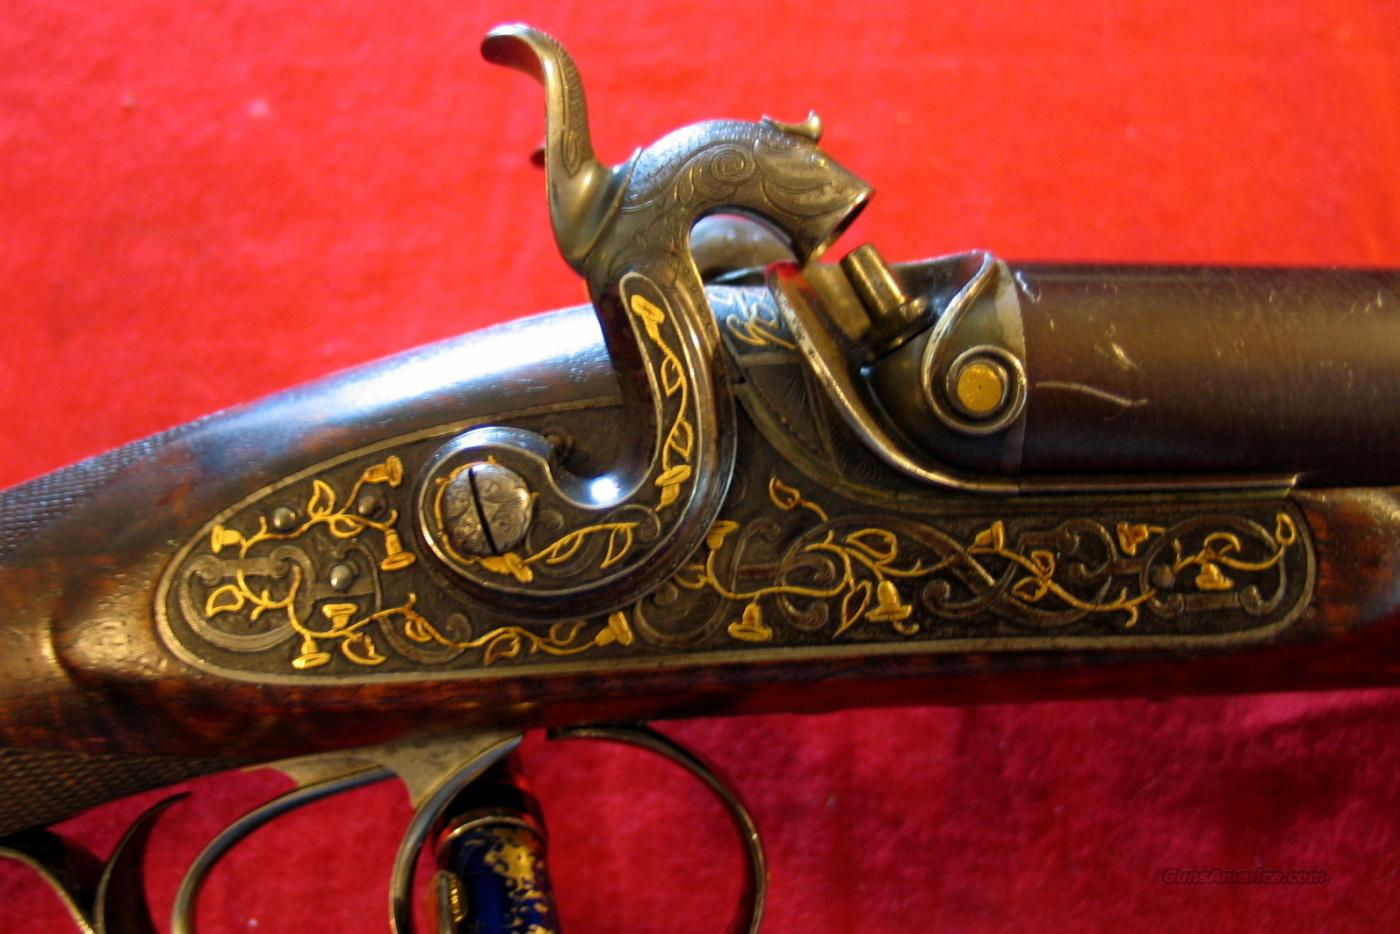 William Read & Son 12 bore - BEAUTIFUL!!  Guns > Shotguns > Antique (Pre-1899) Shotguns - Misc.